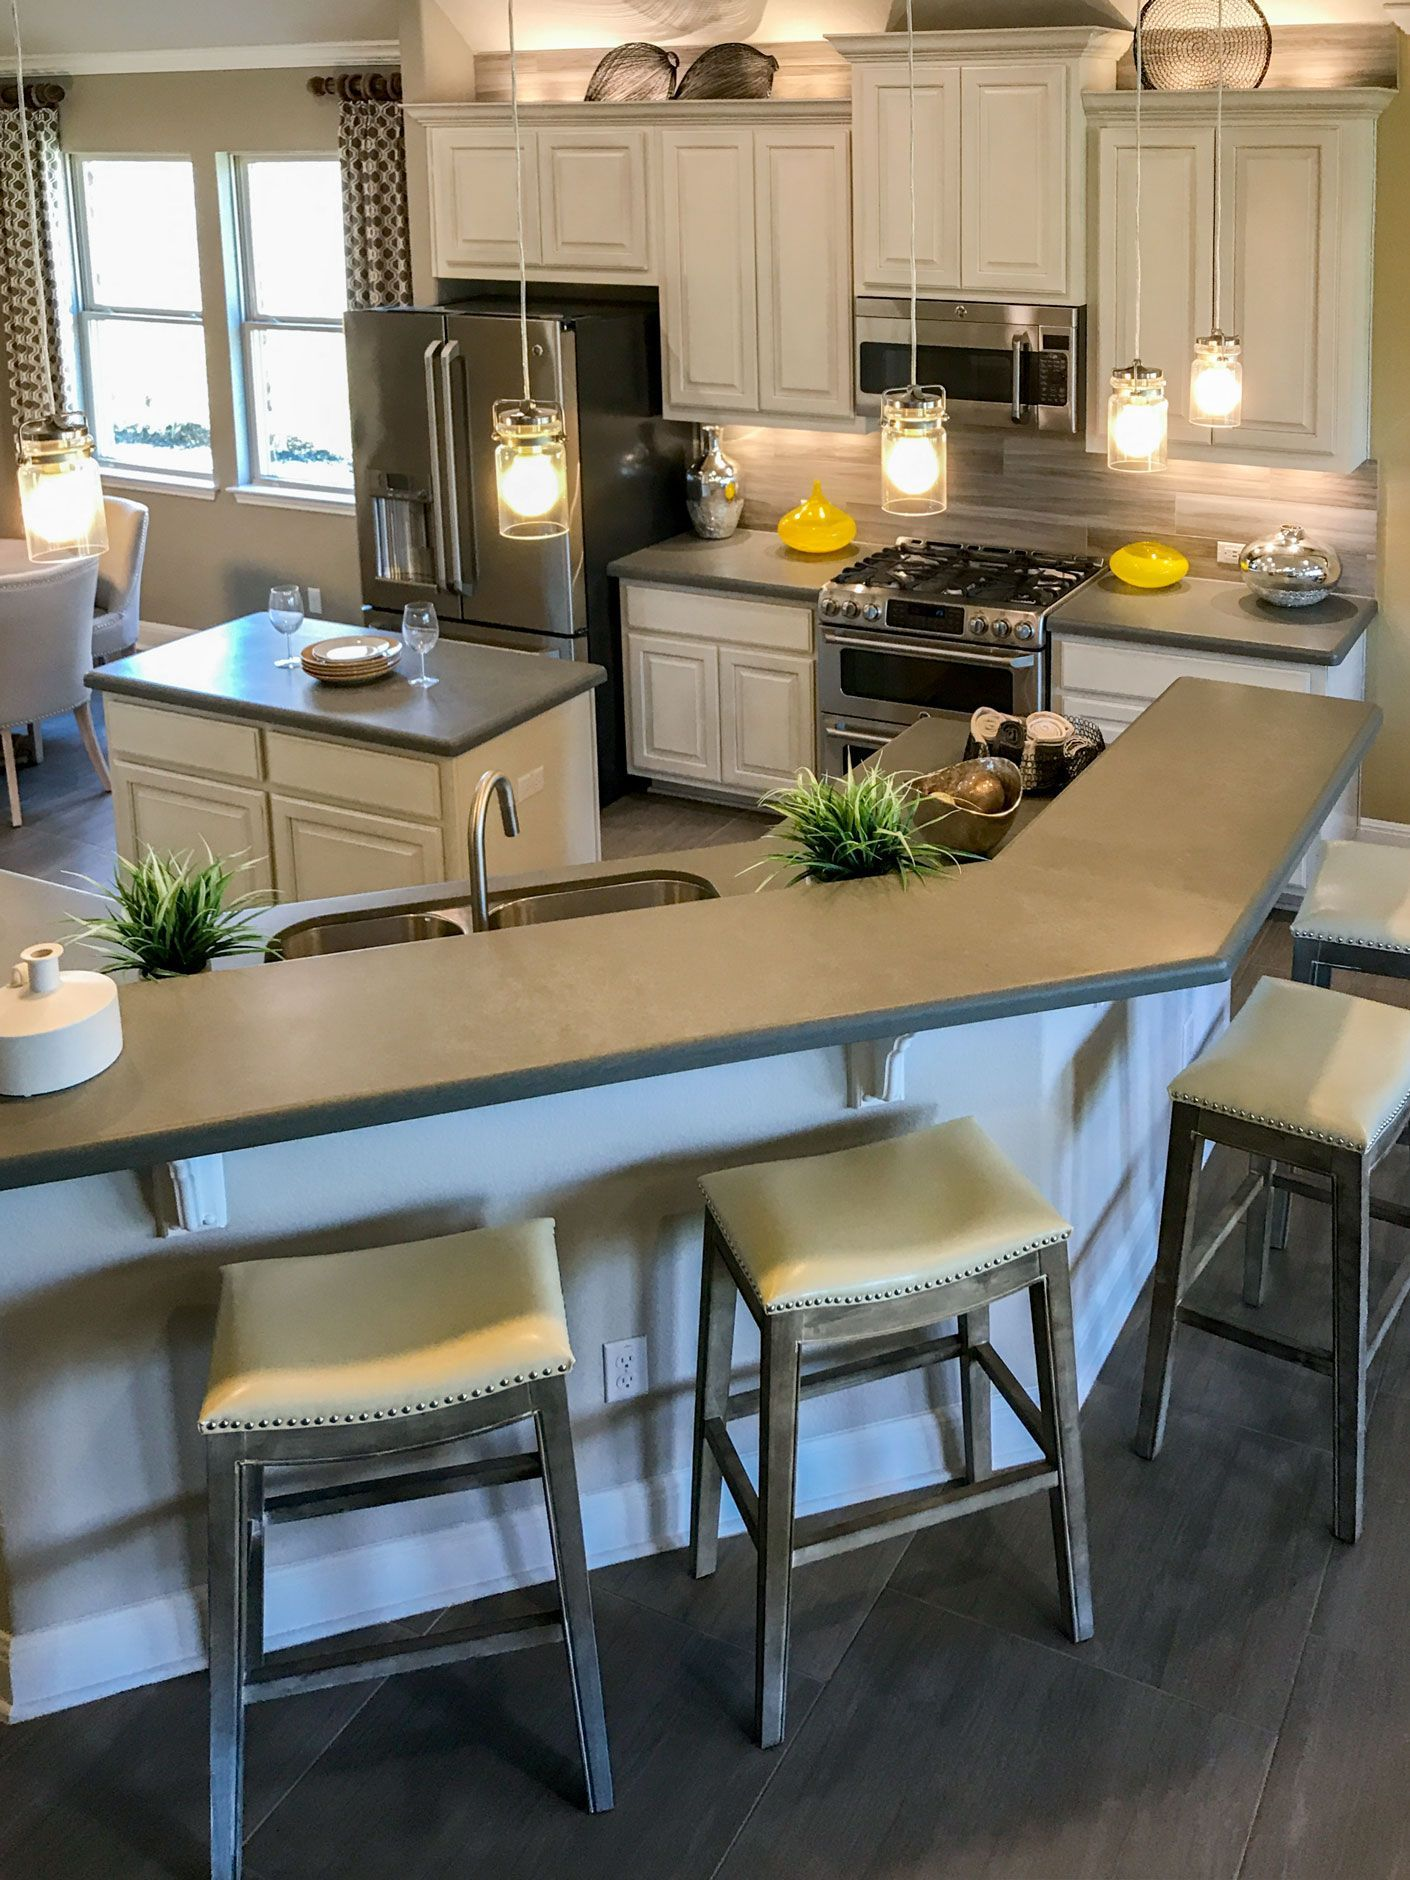 Offwhite kitchen cabinets with gray countertop and yellow accents